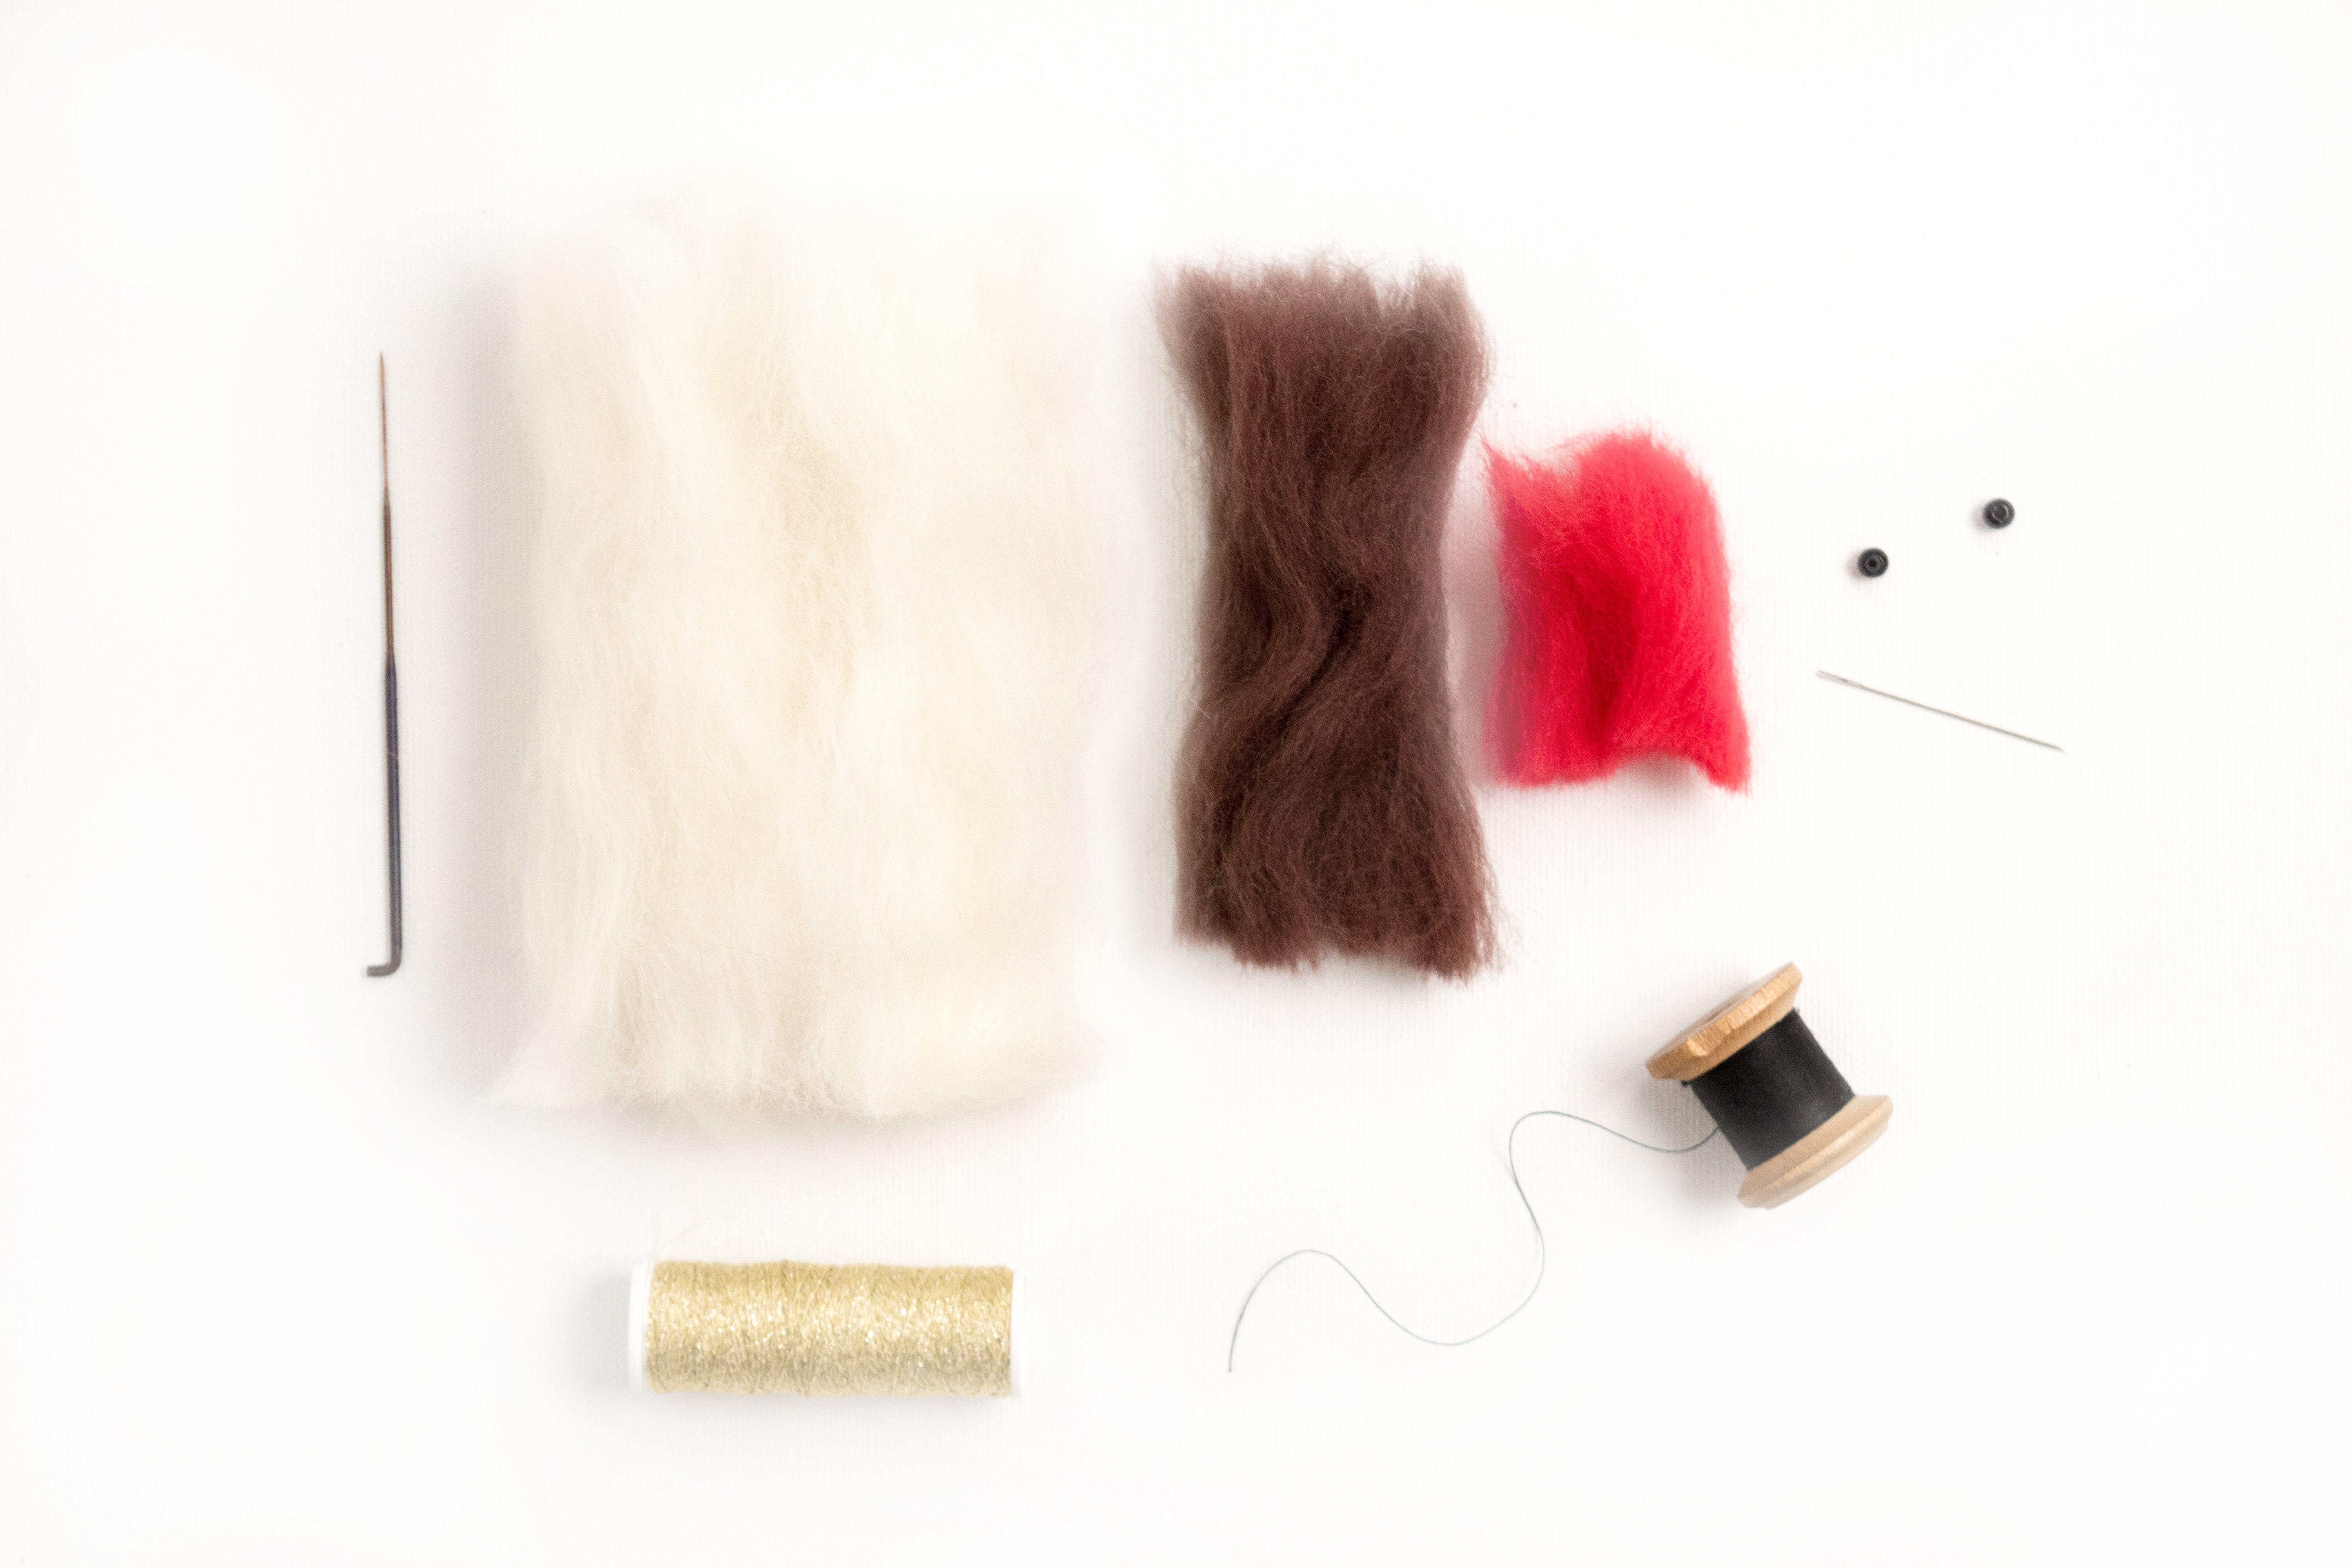 NEEDLE-FELTED-ROBIN-DIY-MATERIALS-AND-EQUIPMENT_edited-1